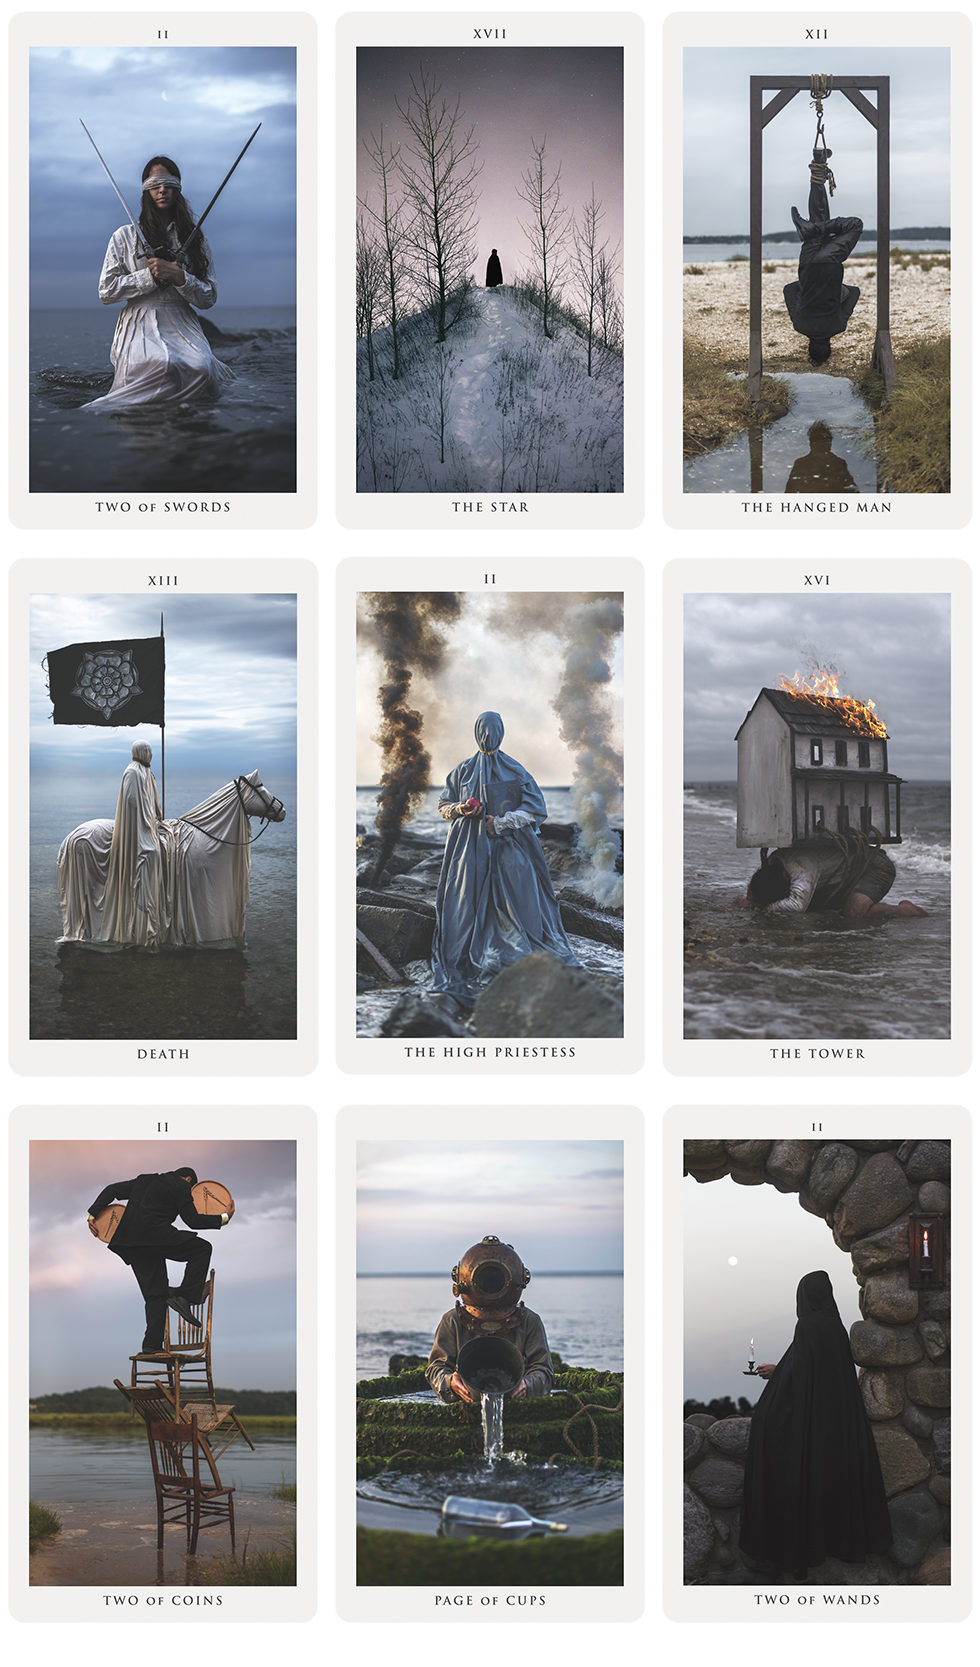 Explore the world of Tarot through the visions of Nicolas Bruno, an artist who transforms his dreams and nightmares into surreal imagery.